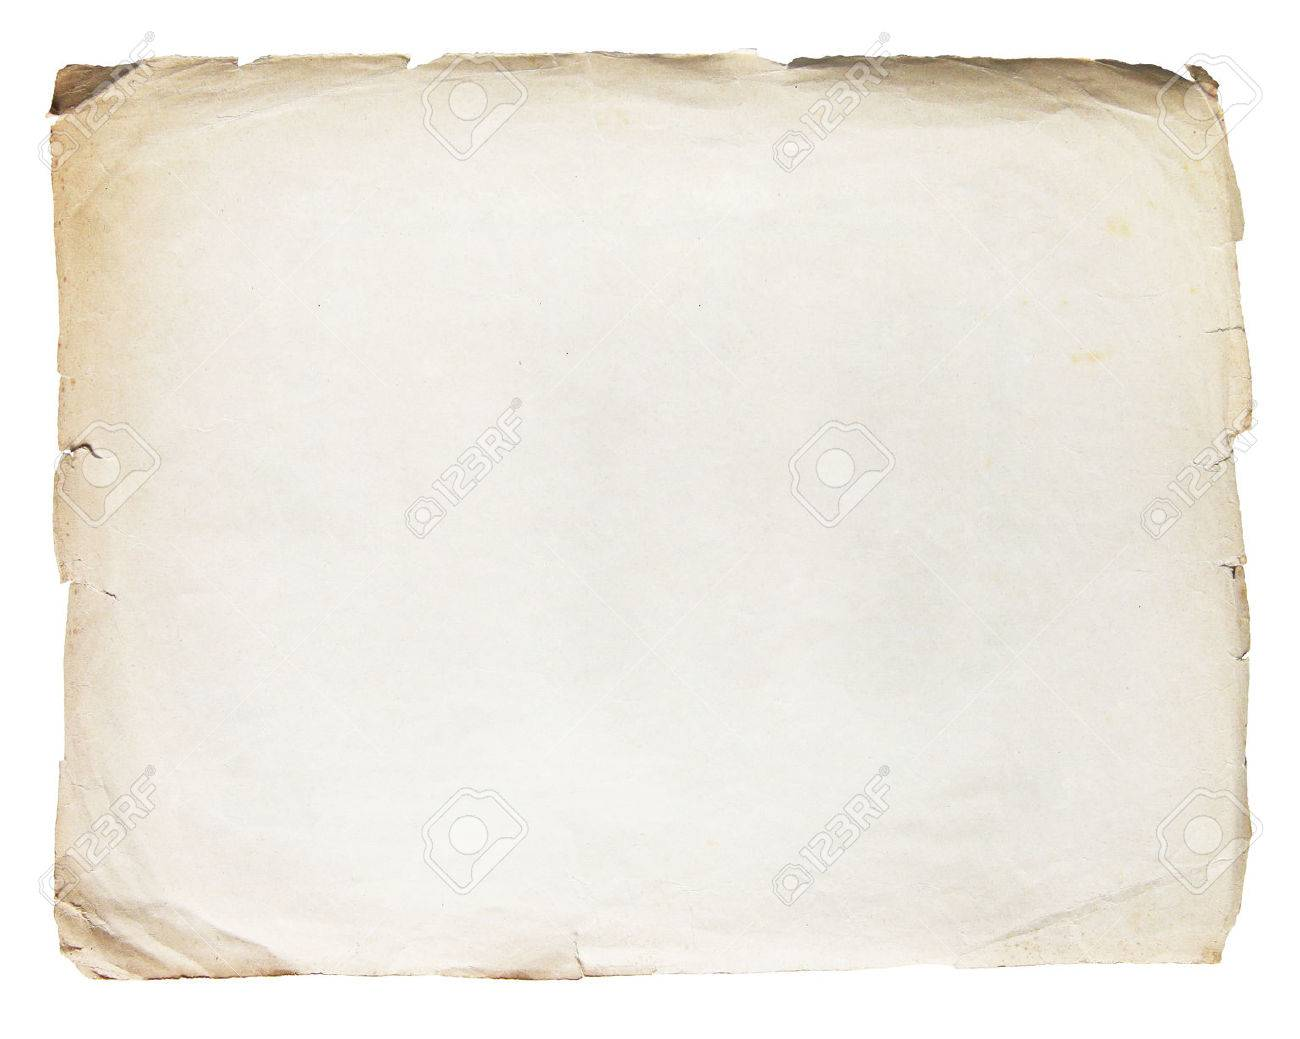 Vintage texture old paper background isolated on white Standard-Bild - 43797286